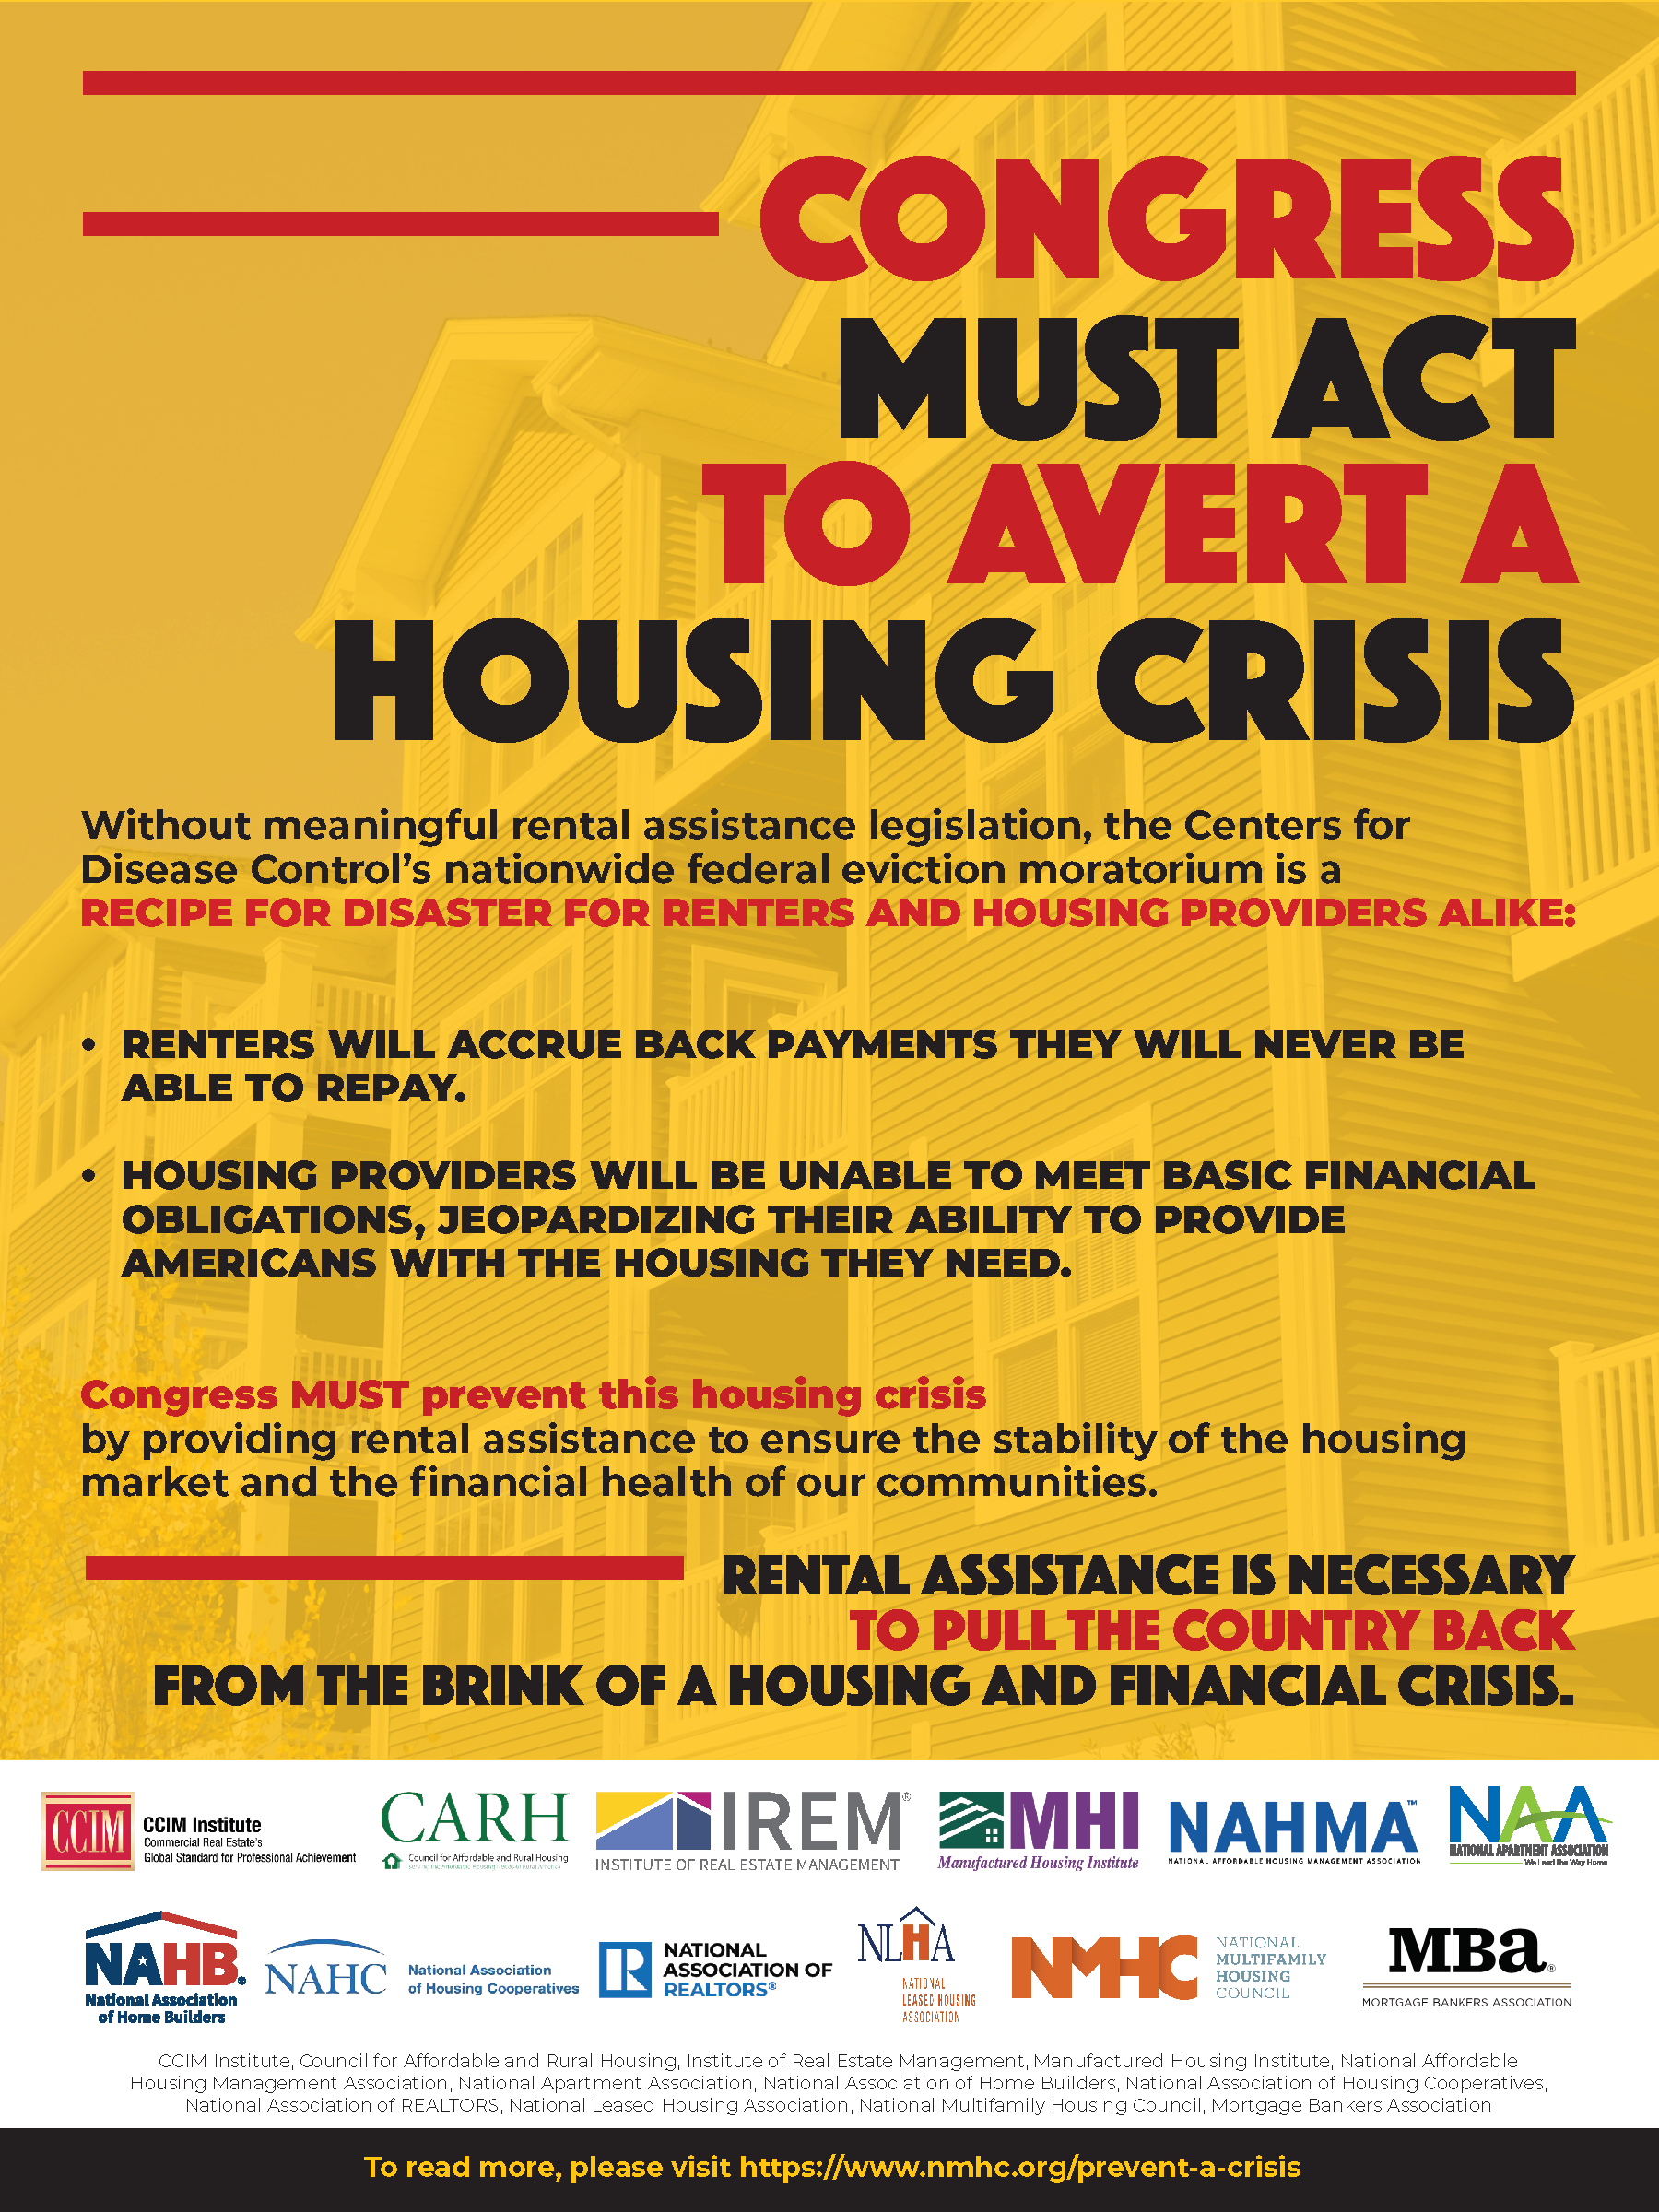 ad run by housing groups calling on Congress for financial relief